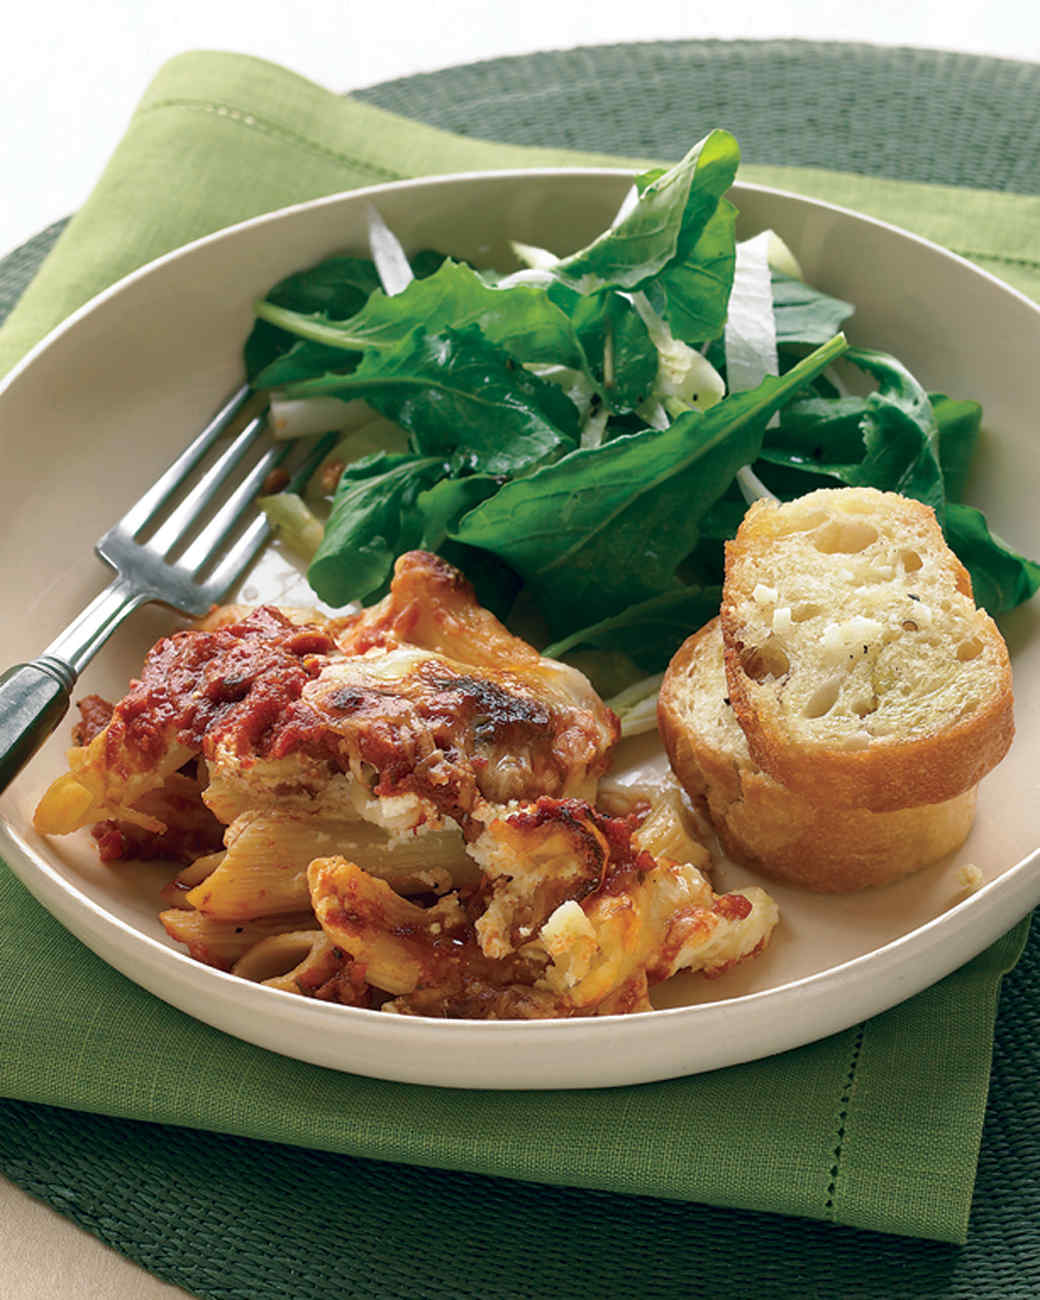 Baked Ziti with Crunchy Italian Salad and Garlic Bread